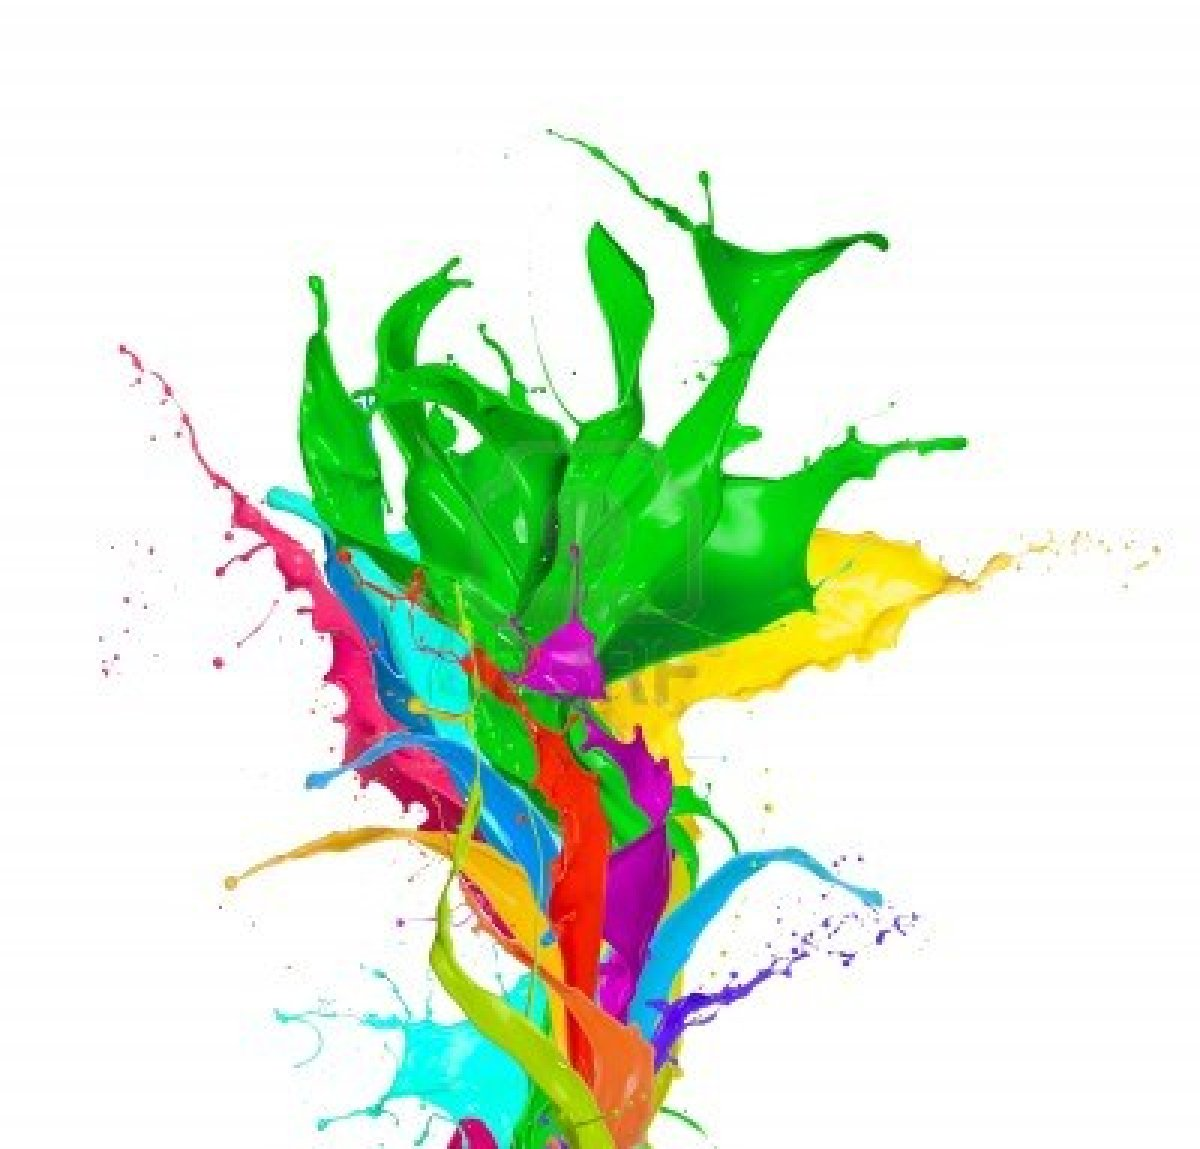 Free Download Paint Splatter Png Images